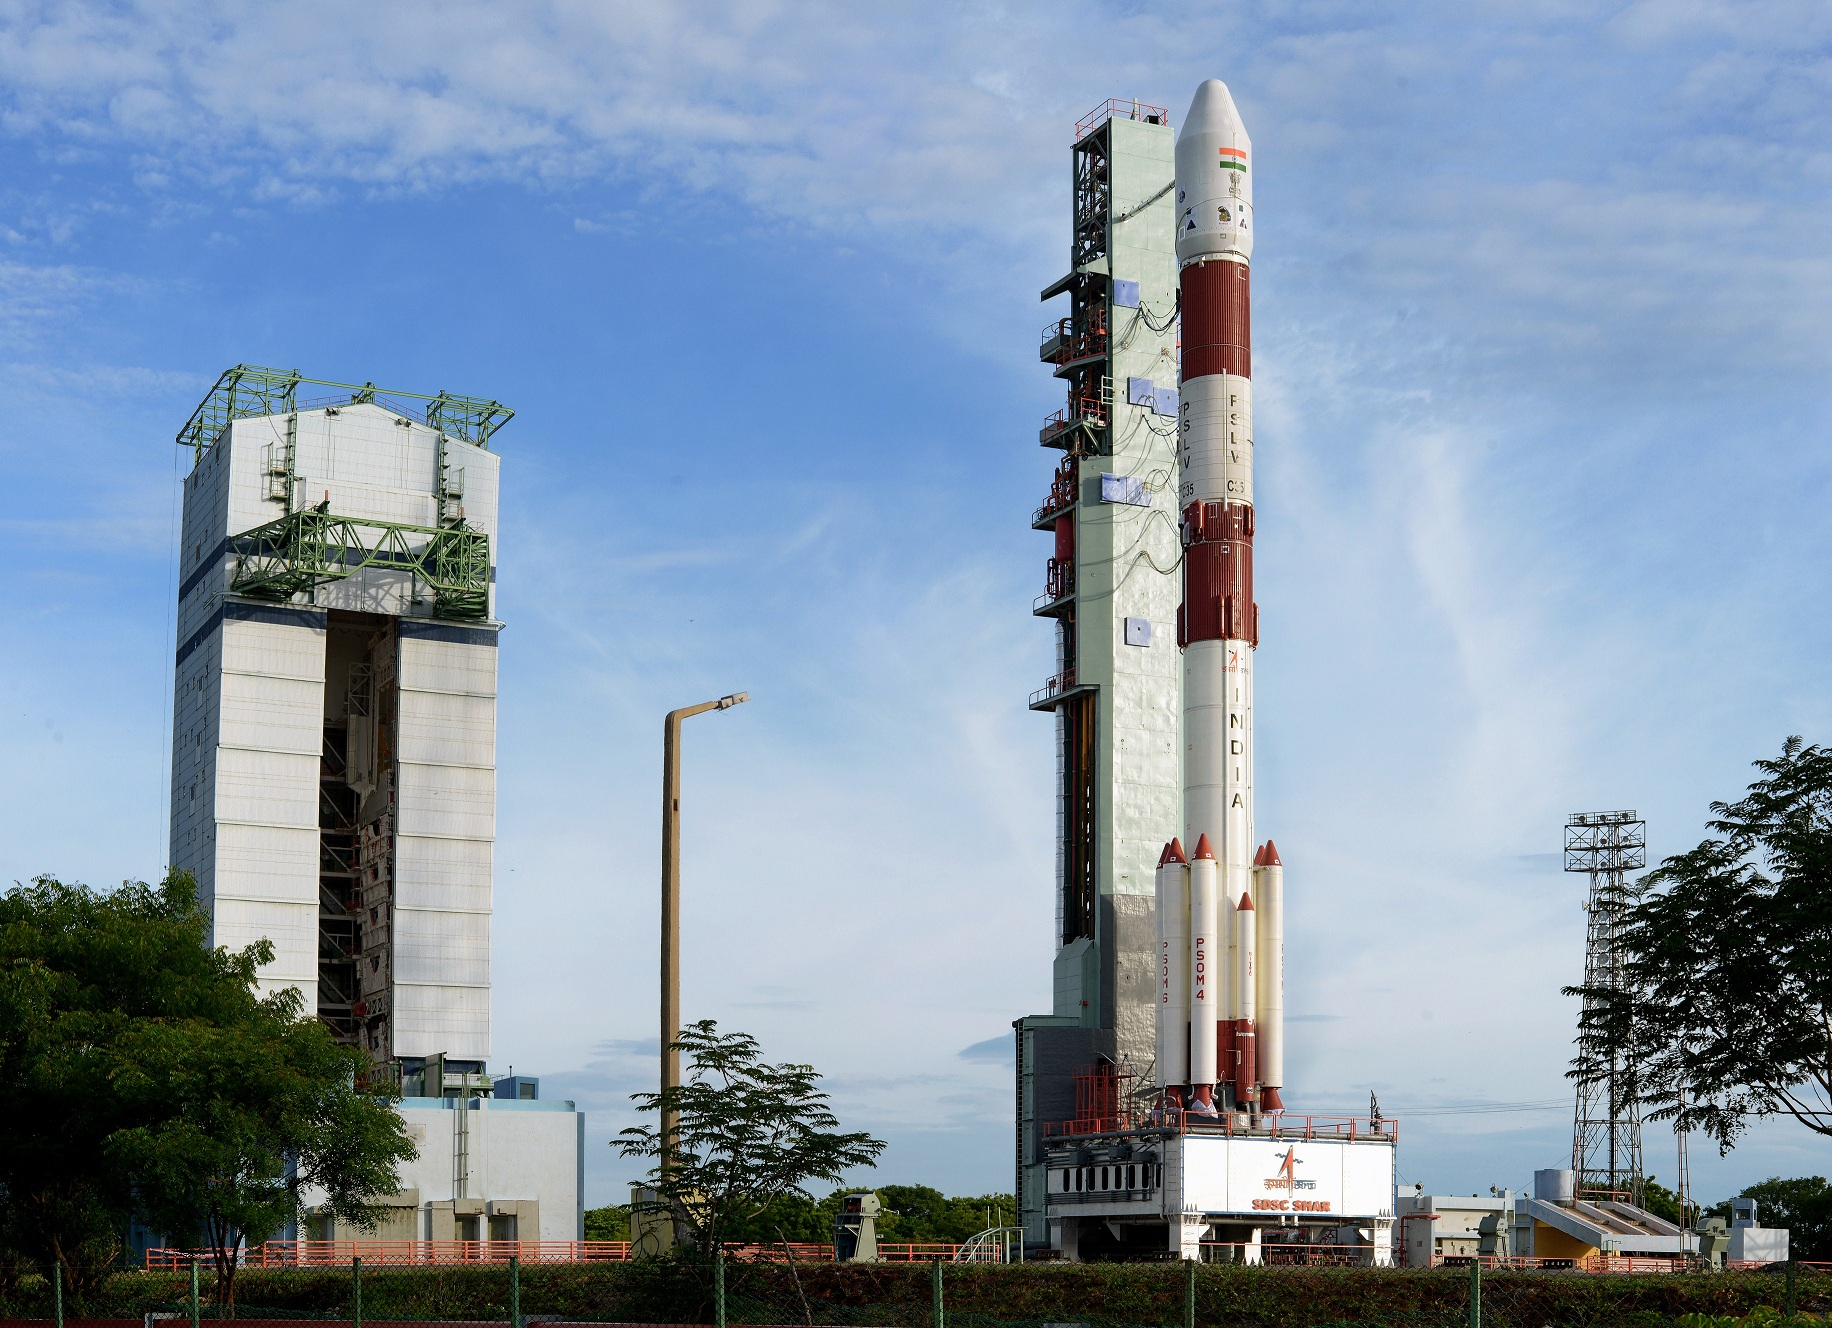 APSLV rocket at the first launchpad at SHAR, ahead of its C35 mission in September 2016. Credit: ISRO